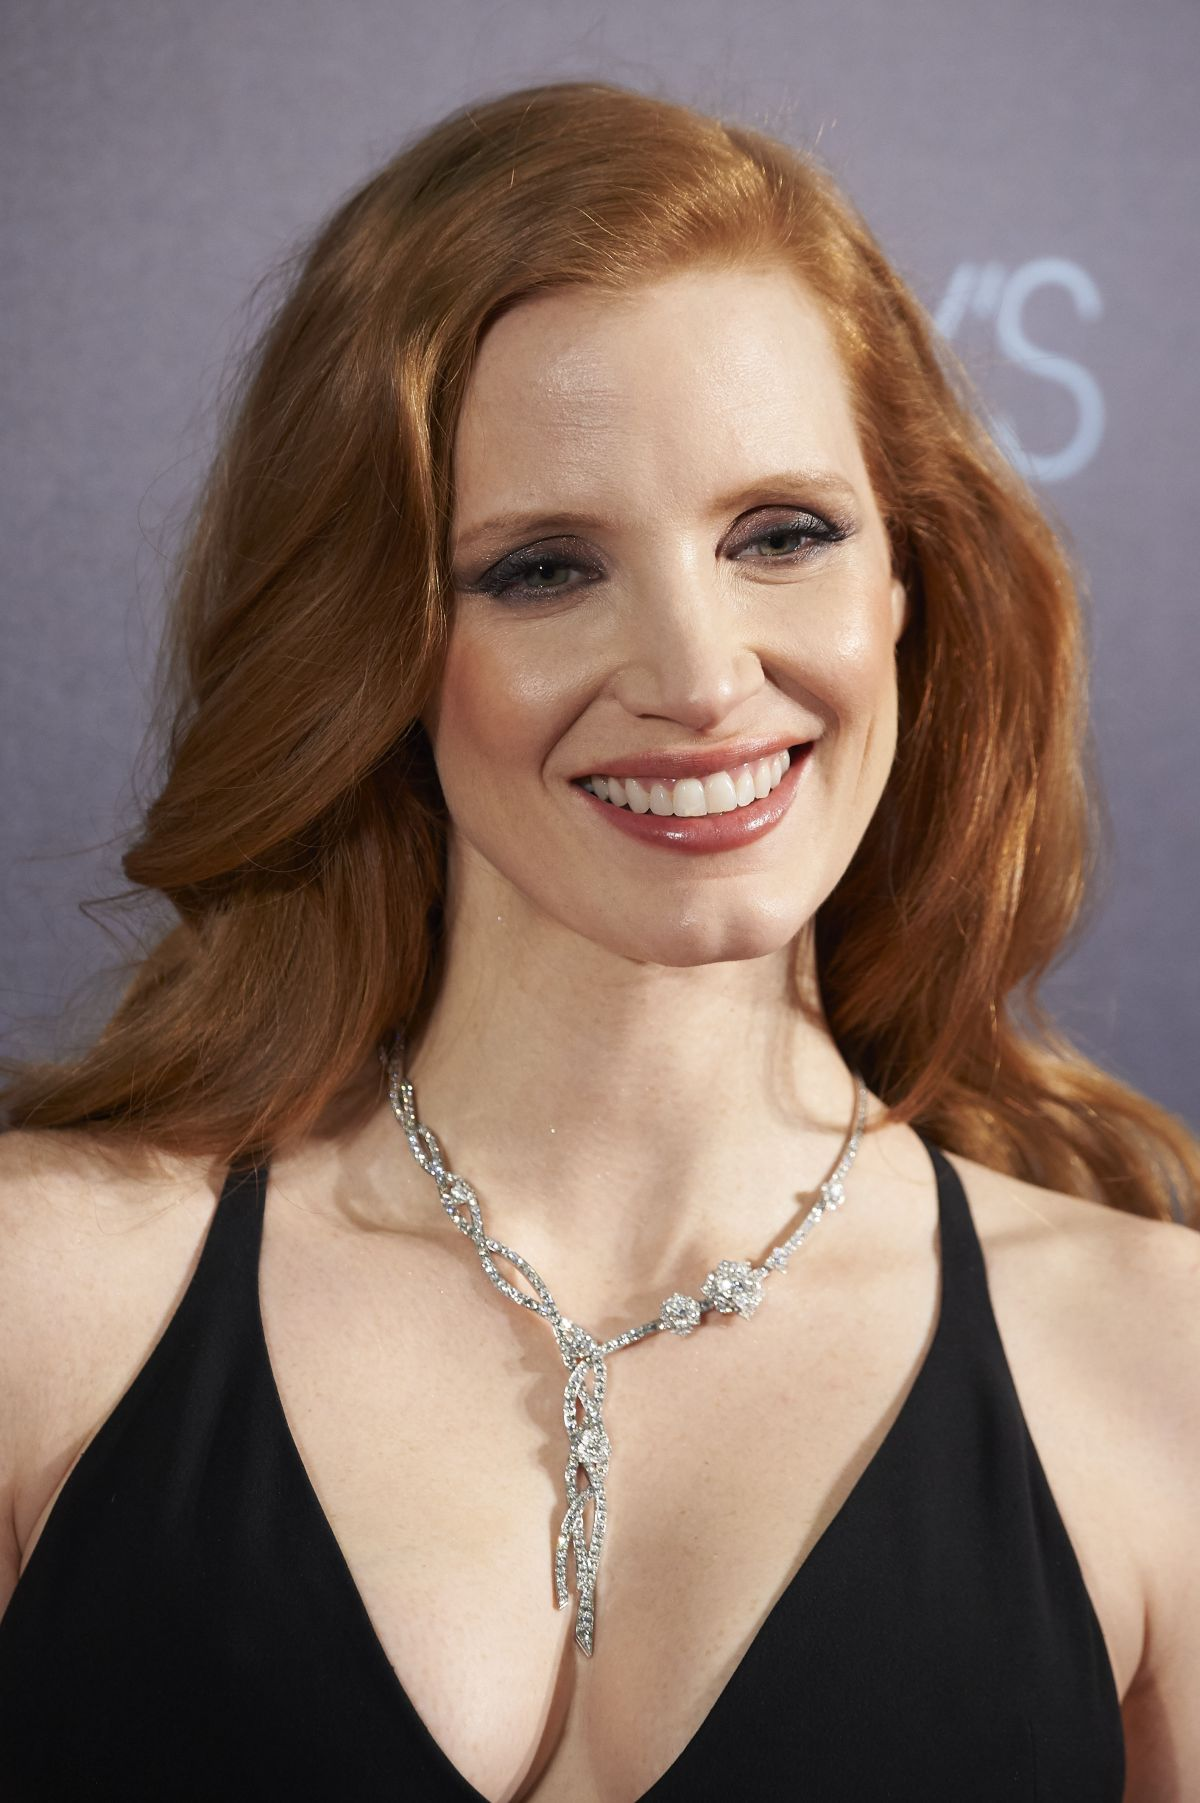 Image Result For Jessica Chastain